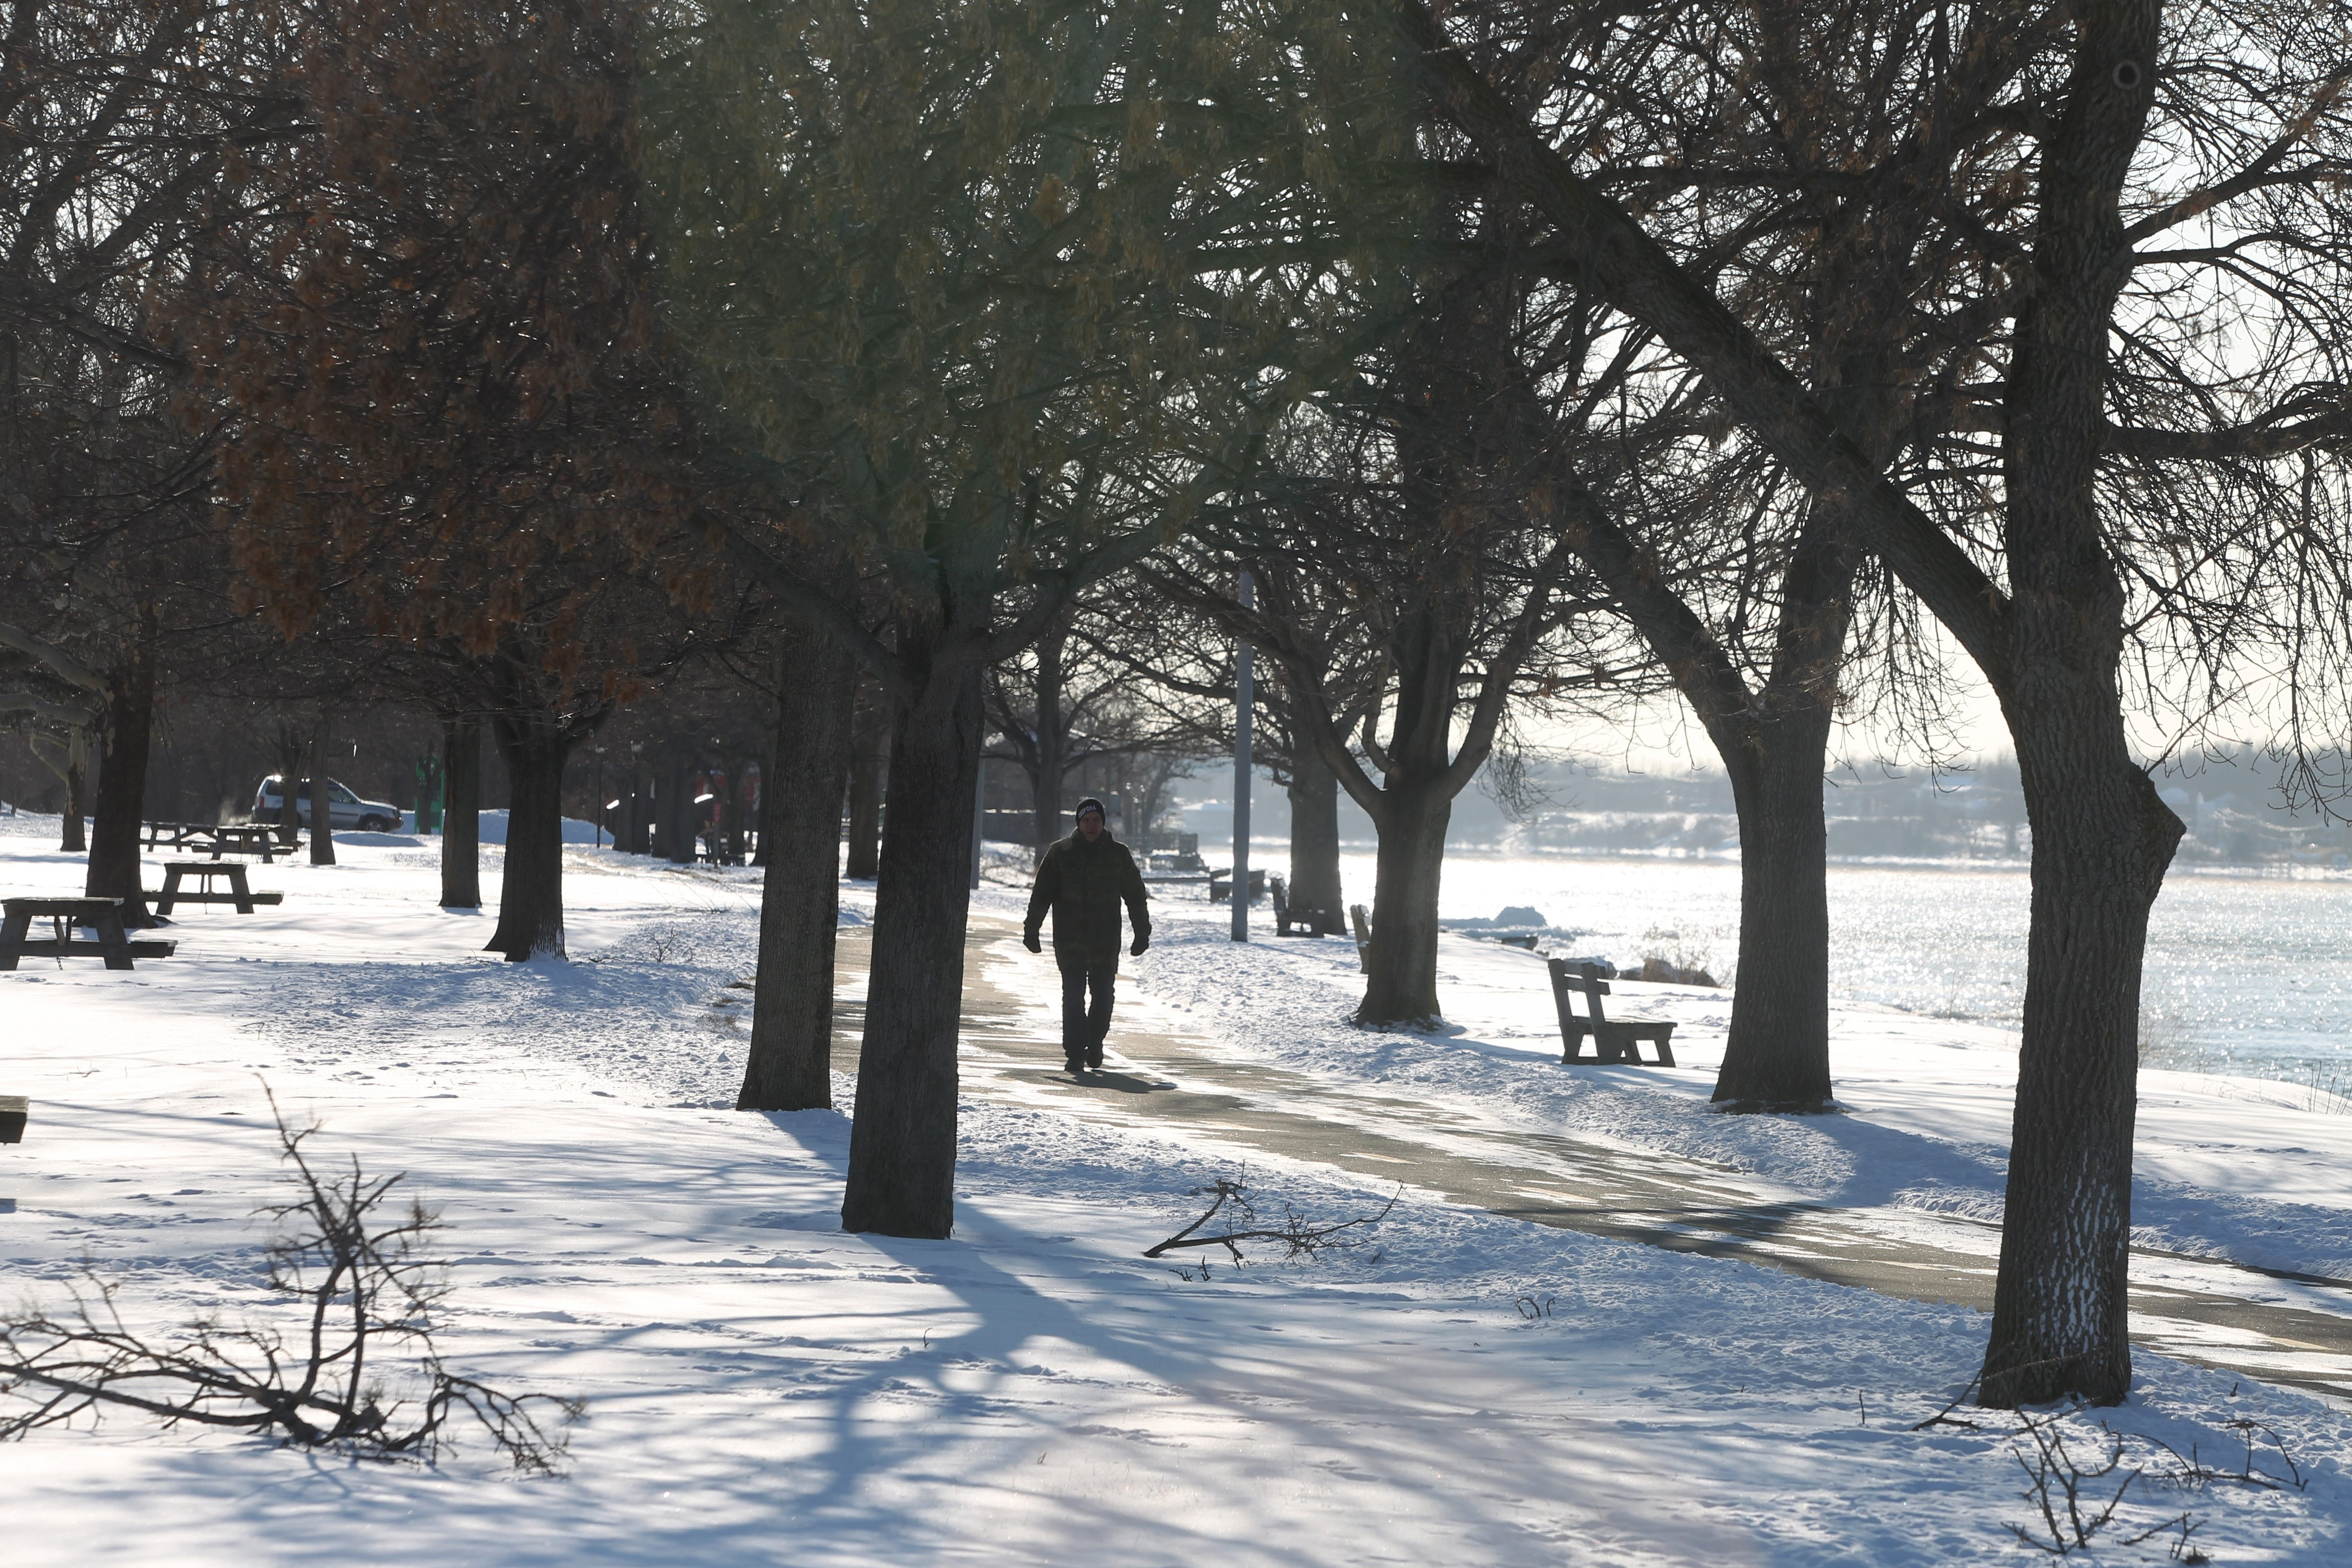 Dan Sentz of the City of Tonawanda was out for an afternoon walk at Niawanda Park Monday when the temperature was 9 degrees.